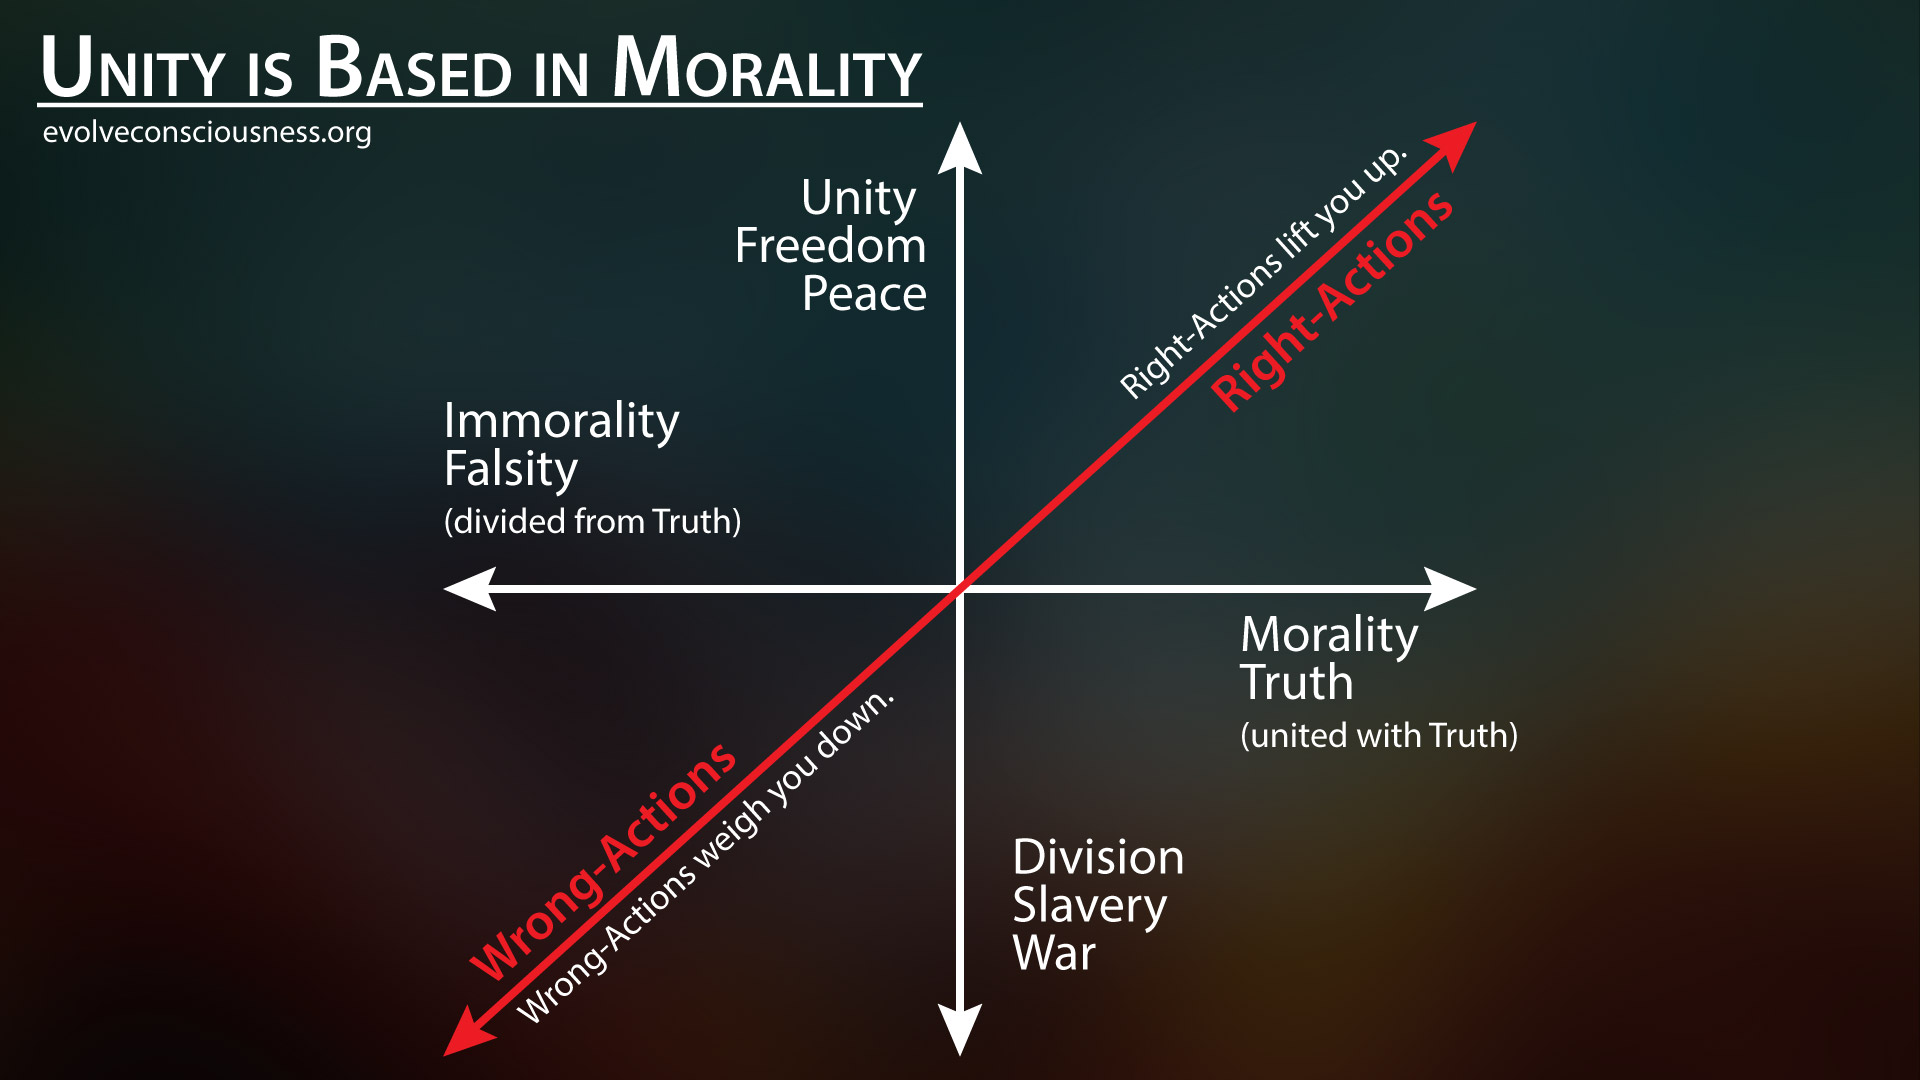 true-unity-based-in-morality